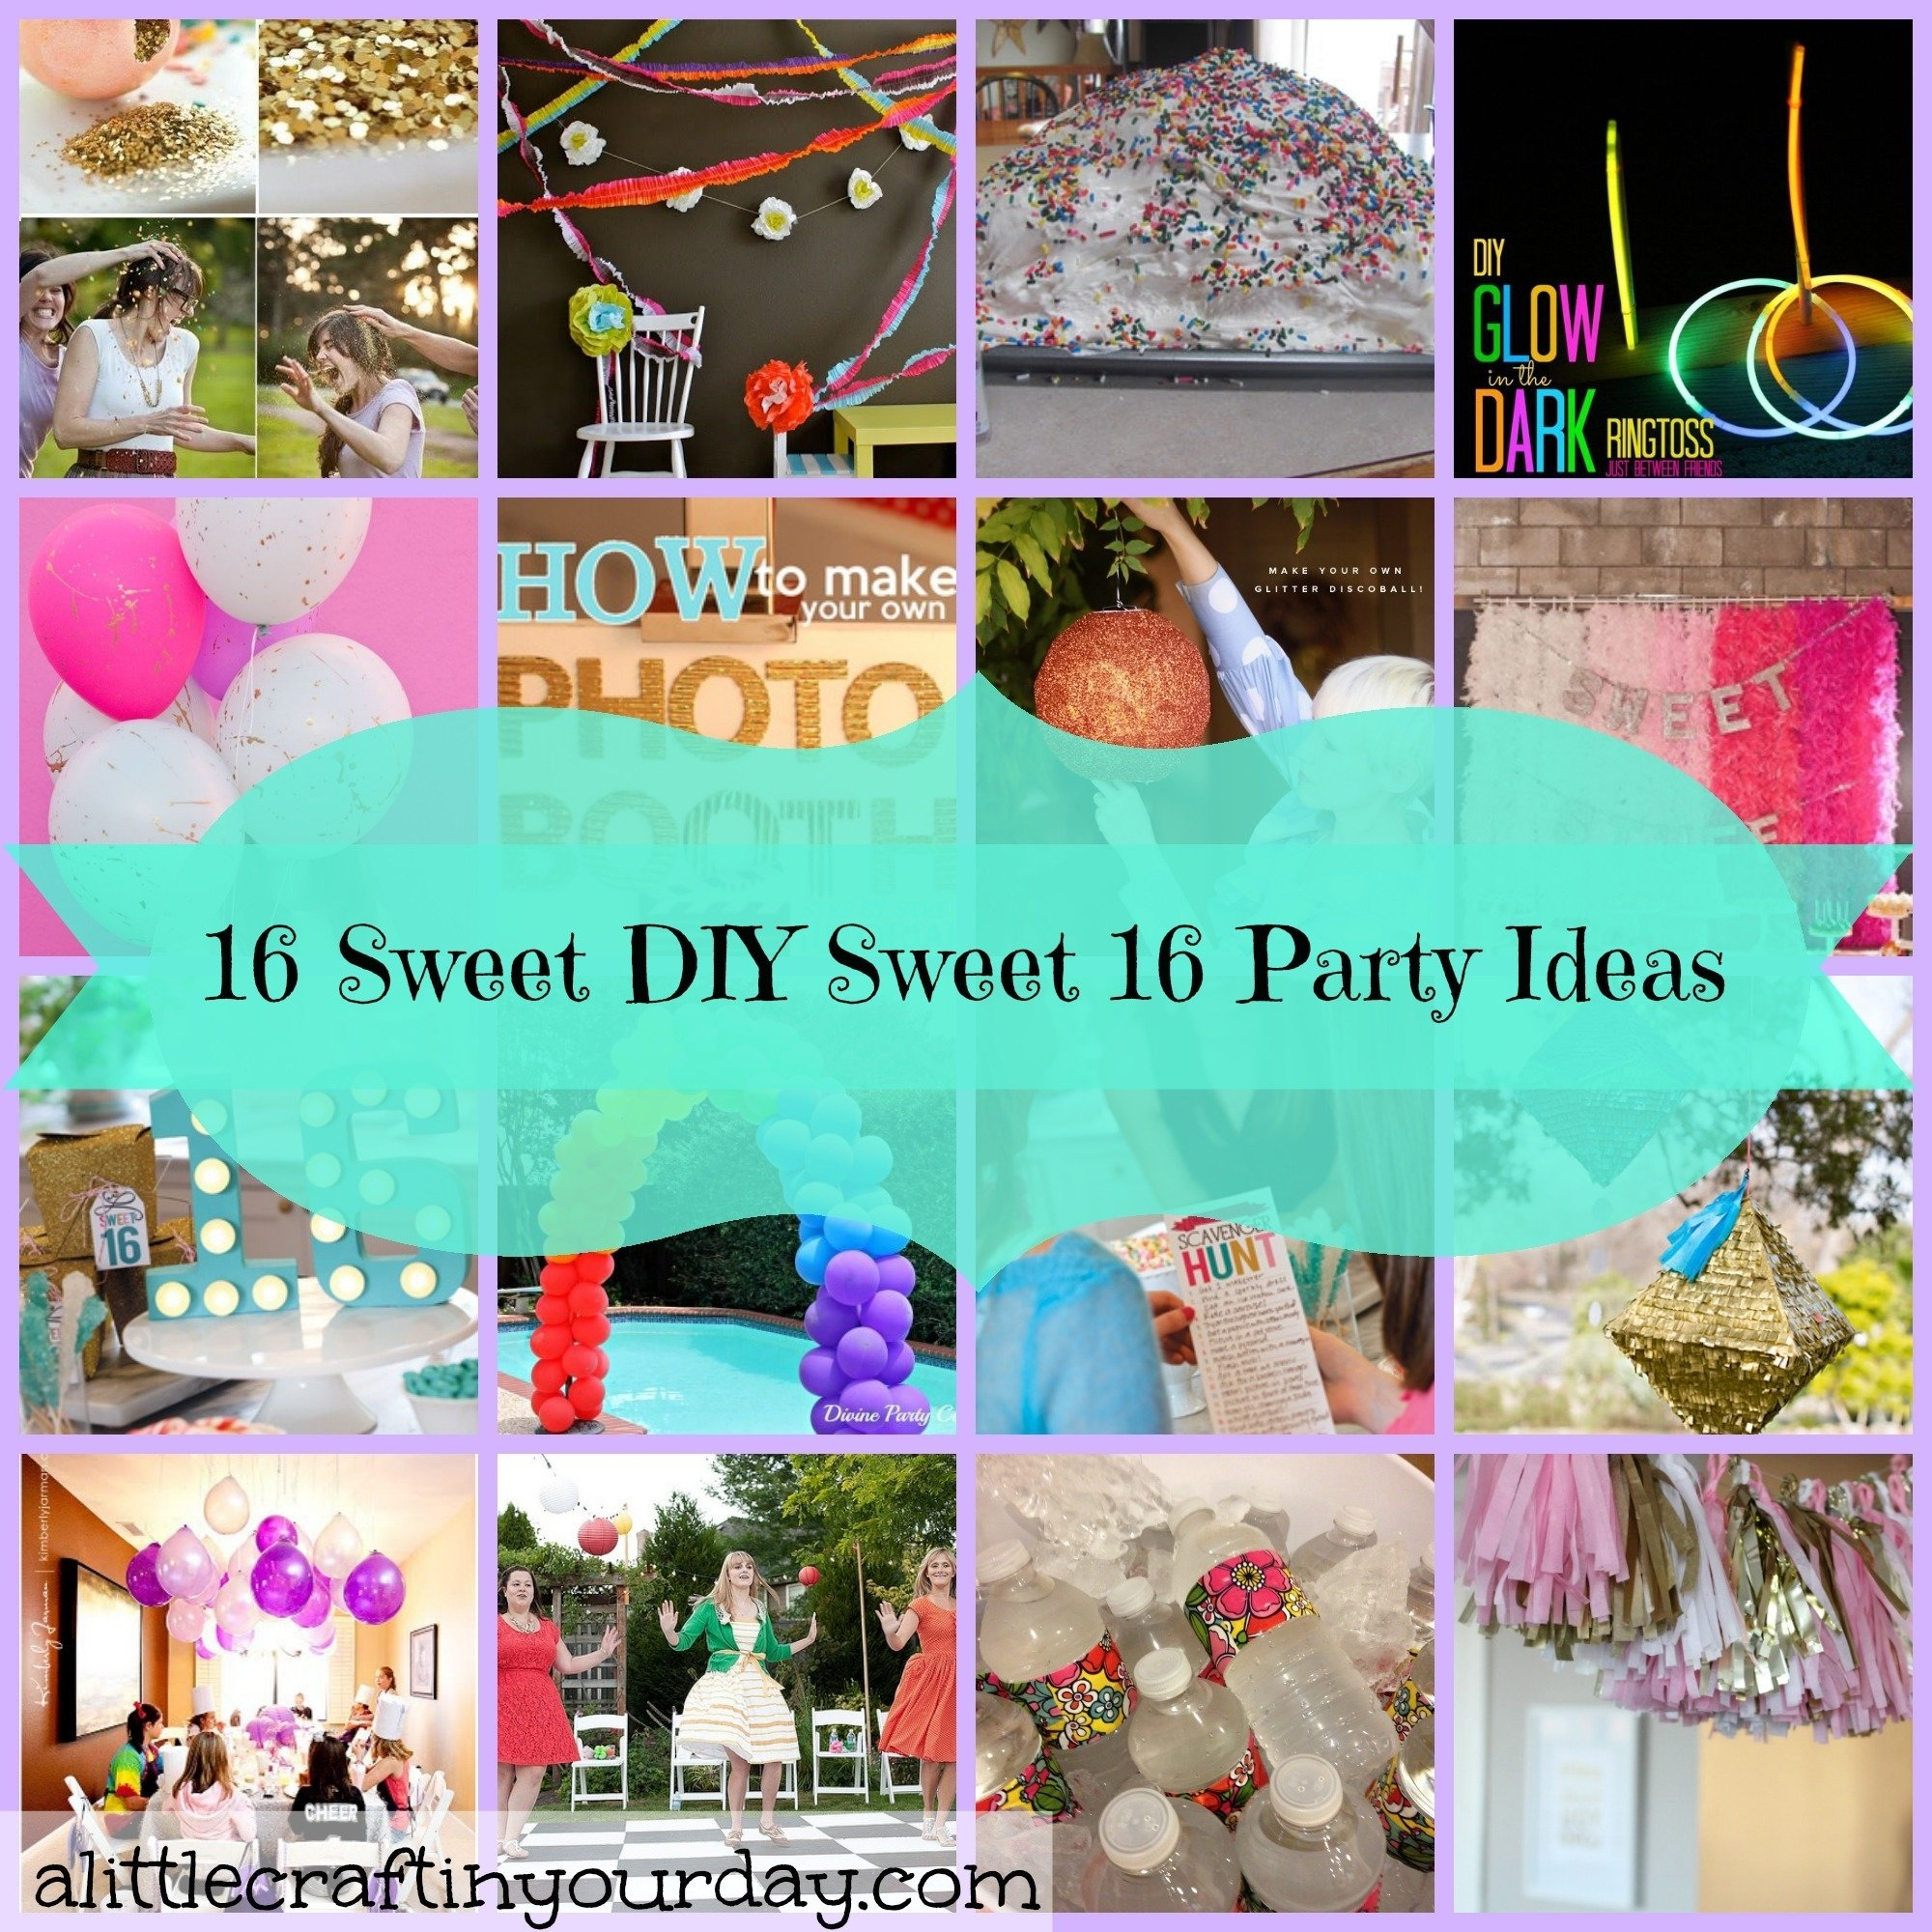 10 Gorgeous 16Th Birthday Party Ideas On A Budget 16 sweet diy sweet 16 party ideas a little craft in your day 3 2021